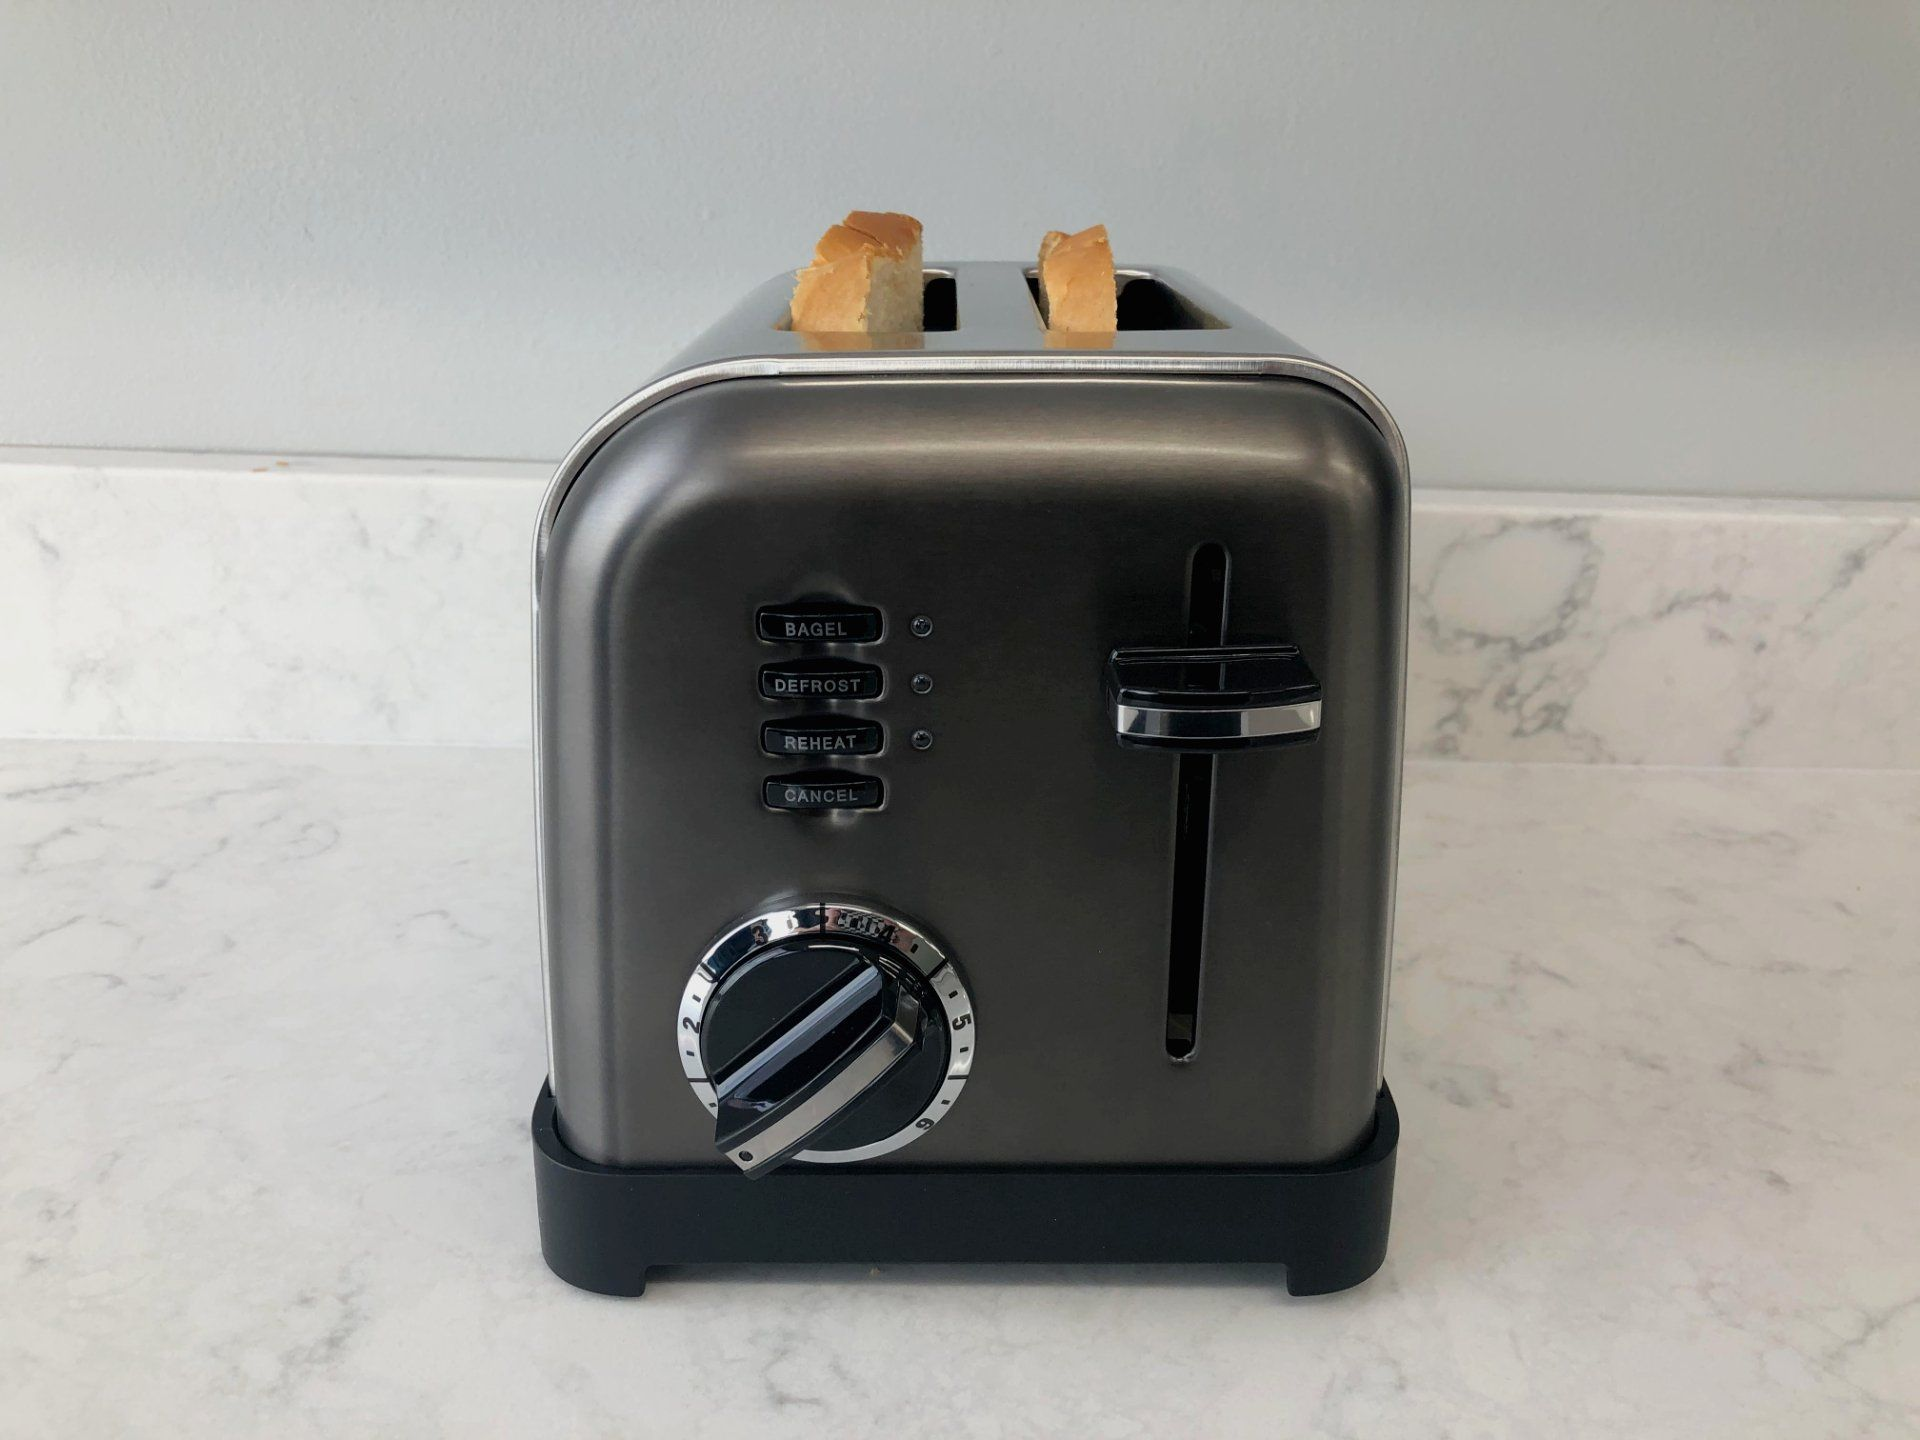 Cuisinart Cpt 160bks Toaster Review 2 Slice Stainless Steel In 2020 Toaster Toaster Reviews Cuisinart